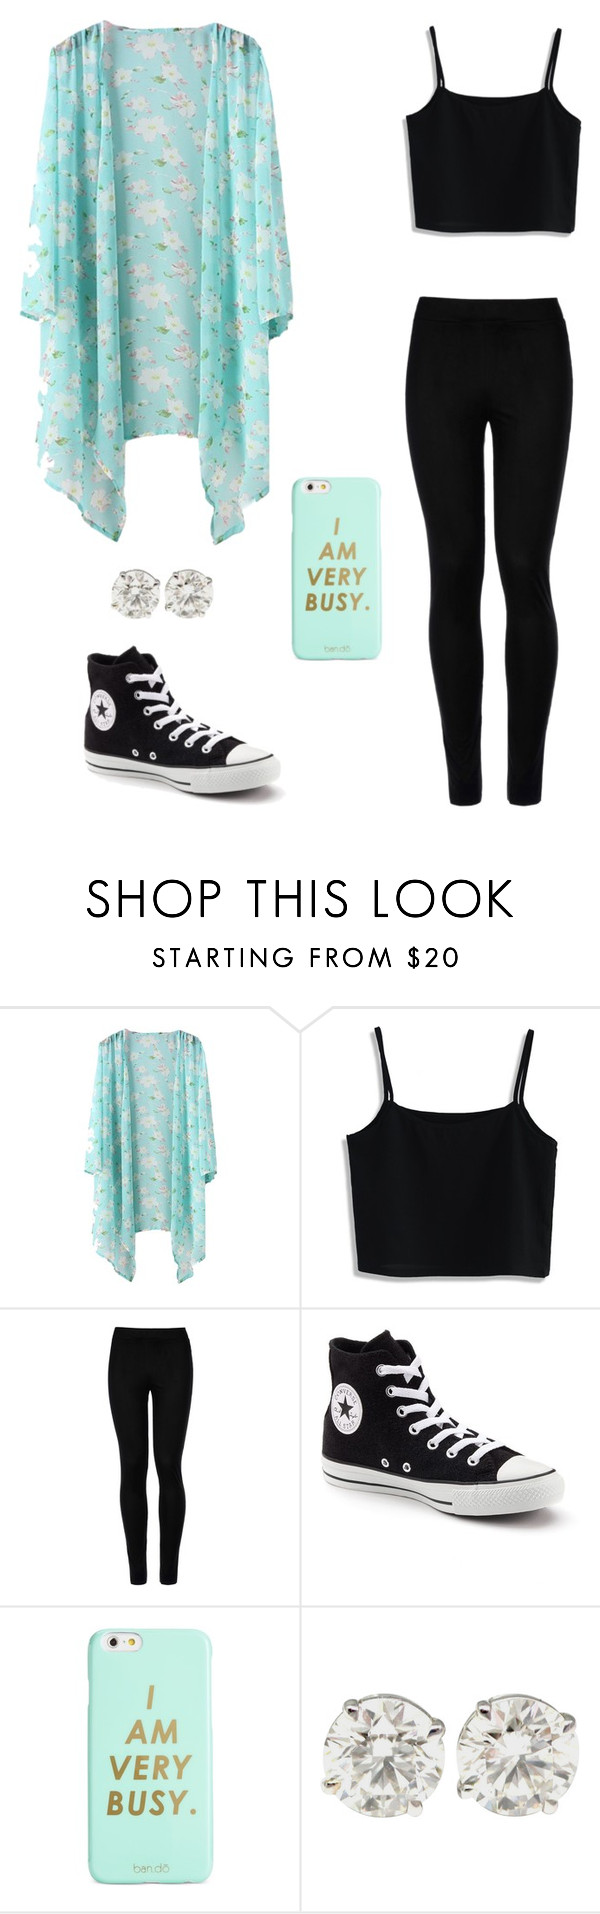 """""""I Am Very Busy"""" by laurenbrgr ❤ liked on Polyvore featuring Chicwish, Wolford, Converse and ban.do"""